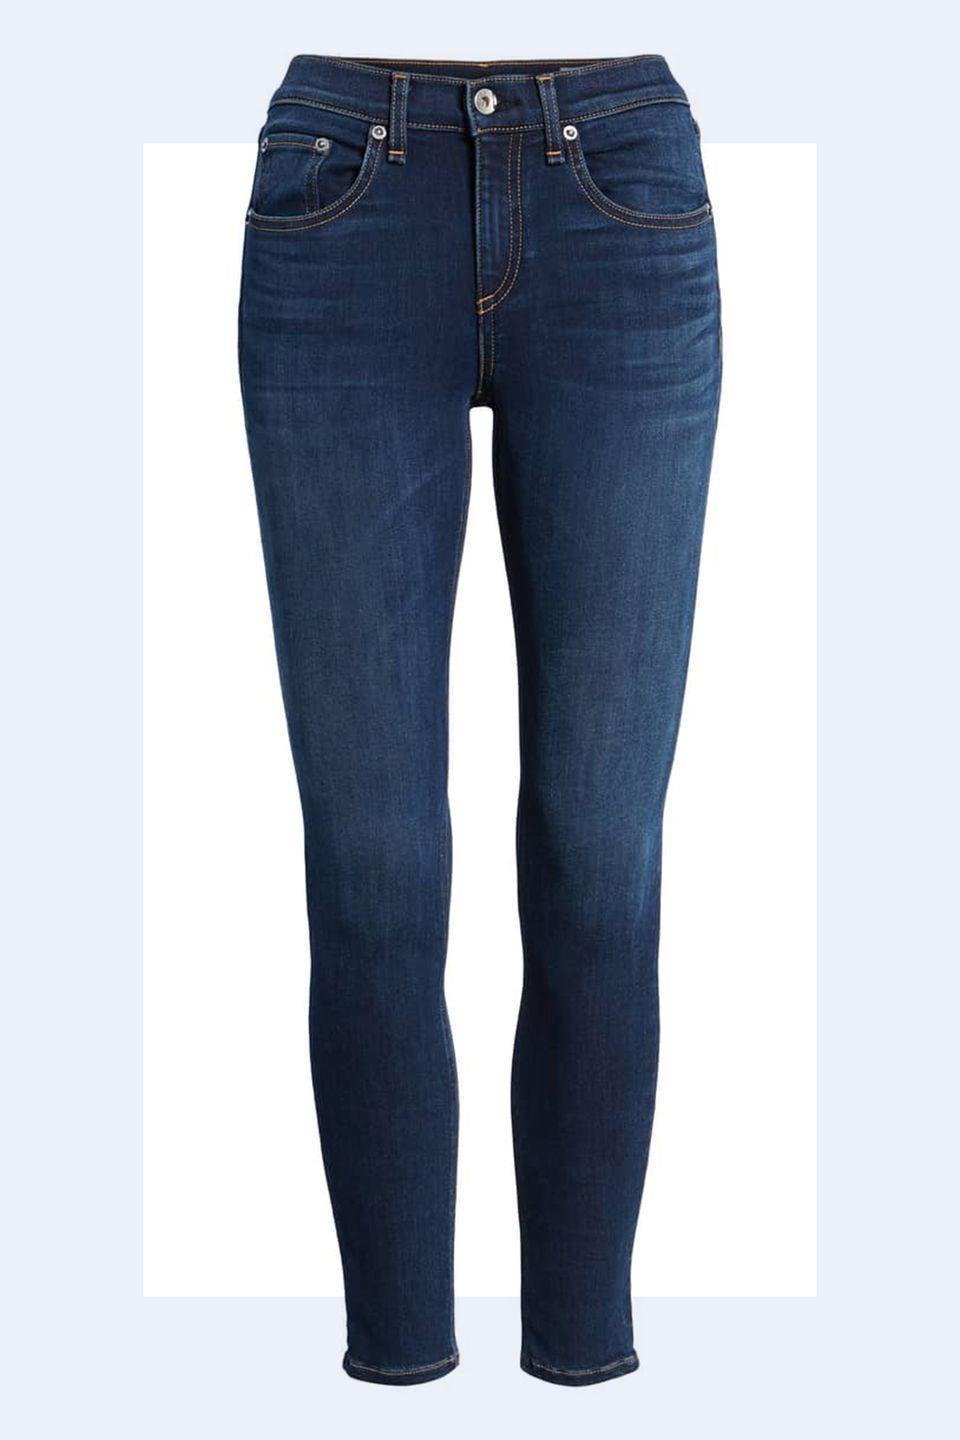 """<p><a rel=""""nofollow noopener"""" href=""""https://shop.nordstrom.com/s/rag-bone-jean-ankle-skinny-jeans-bloo-moon/4932701?origin=keywordsearch-personalizedsort&breadcrumb=Home%2FAll%20Results&color=bloo%20moon"""" target=""""_blank"""" data-ylk=""""slk:SHOP NOW"""" class=""""link rapid-noclick-resp"""">SHOP NOW</a> <em>Rag & Bone Jeans, $116.98</em></p><p>""""Dark denim is more polished whereas a light denim reads a bit more casual. In a professional setting, dark denim is a safe choice but <strong>more important</strong> than the wash of the denim <strong>is the fit.</strong>"""" -<em><a rel=""""nofollow noopener"""" href=""""http://theonly.agency/negar-ali-kline"""" target=""""_blank"""" data-ylk=""""slk:Negar Ali Kline"""" class=""""link rapid-noclick-resp"""">Negar Ali Kline</a></em></p>"""